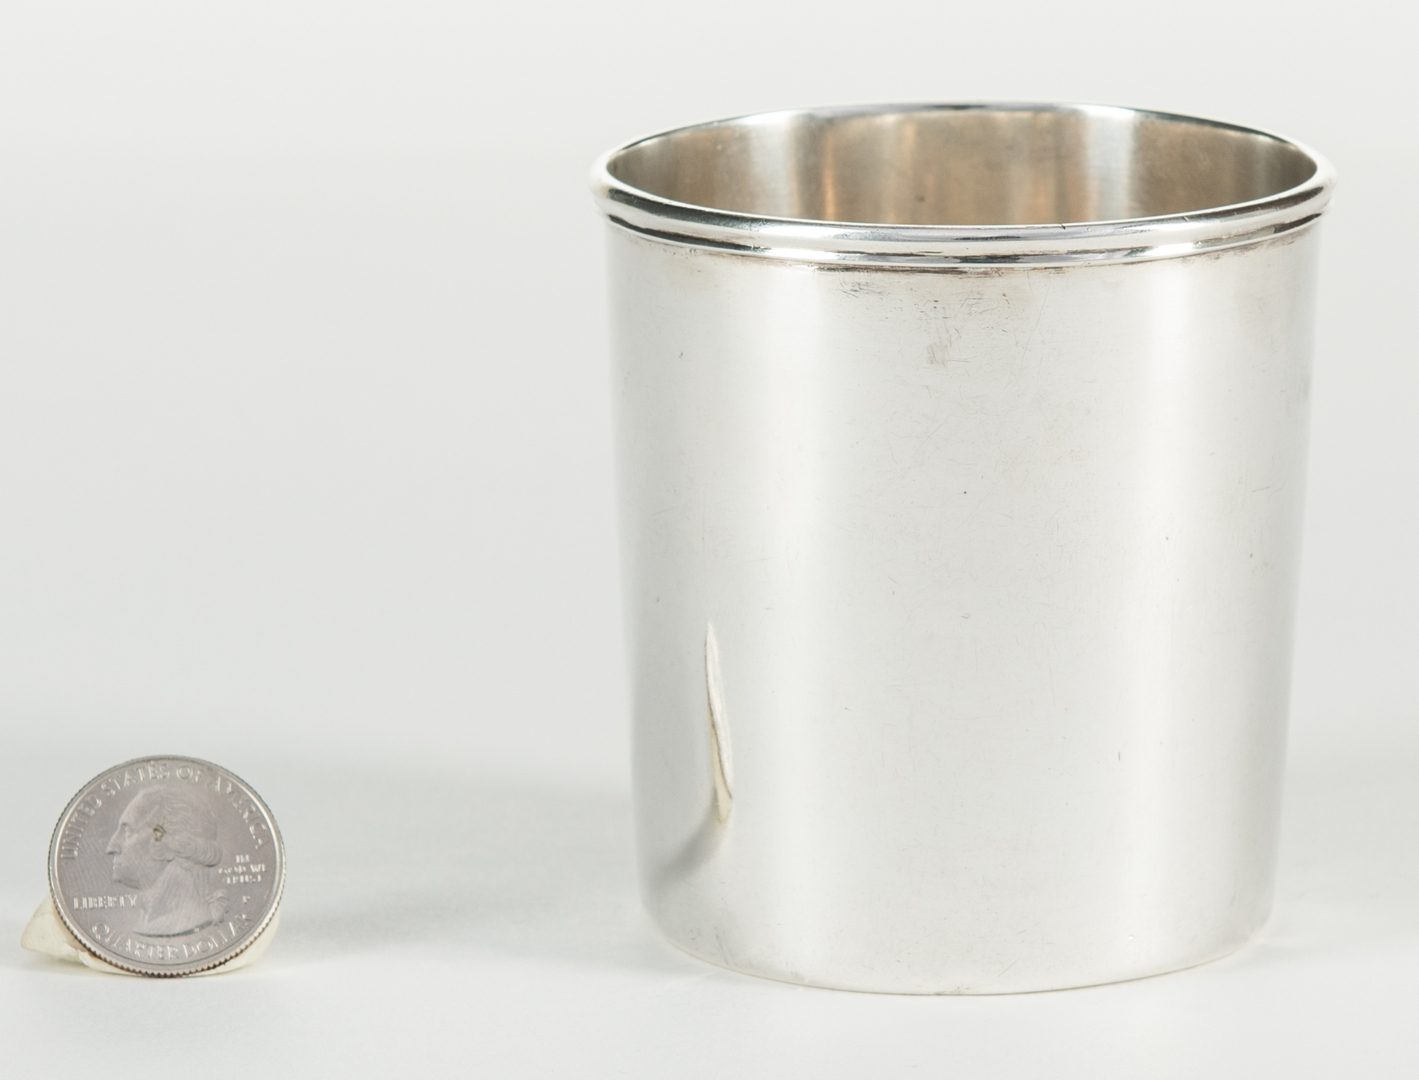 Lot 272: Lexington, KY Coin Silver Julep, Garner